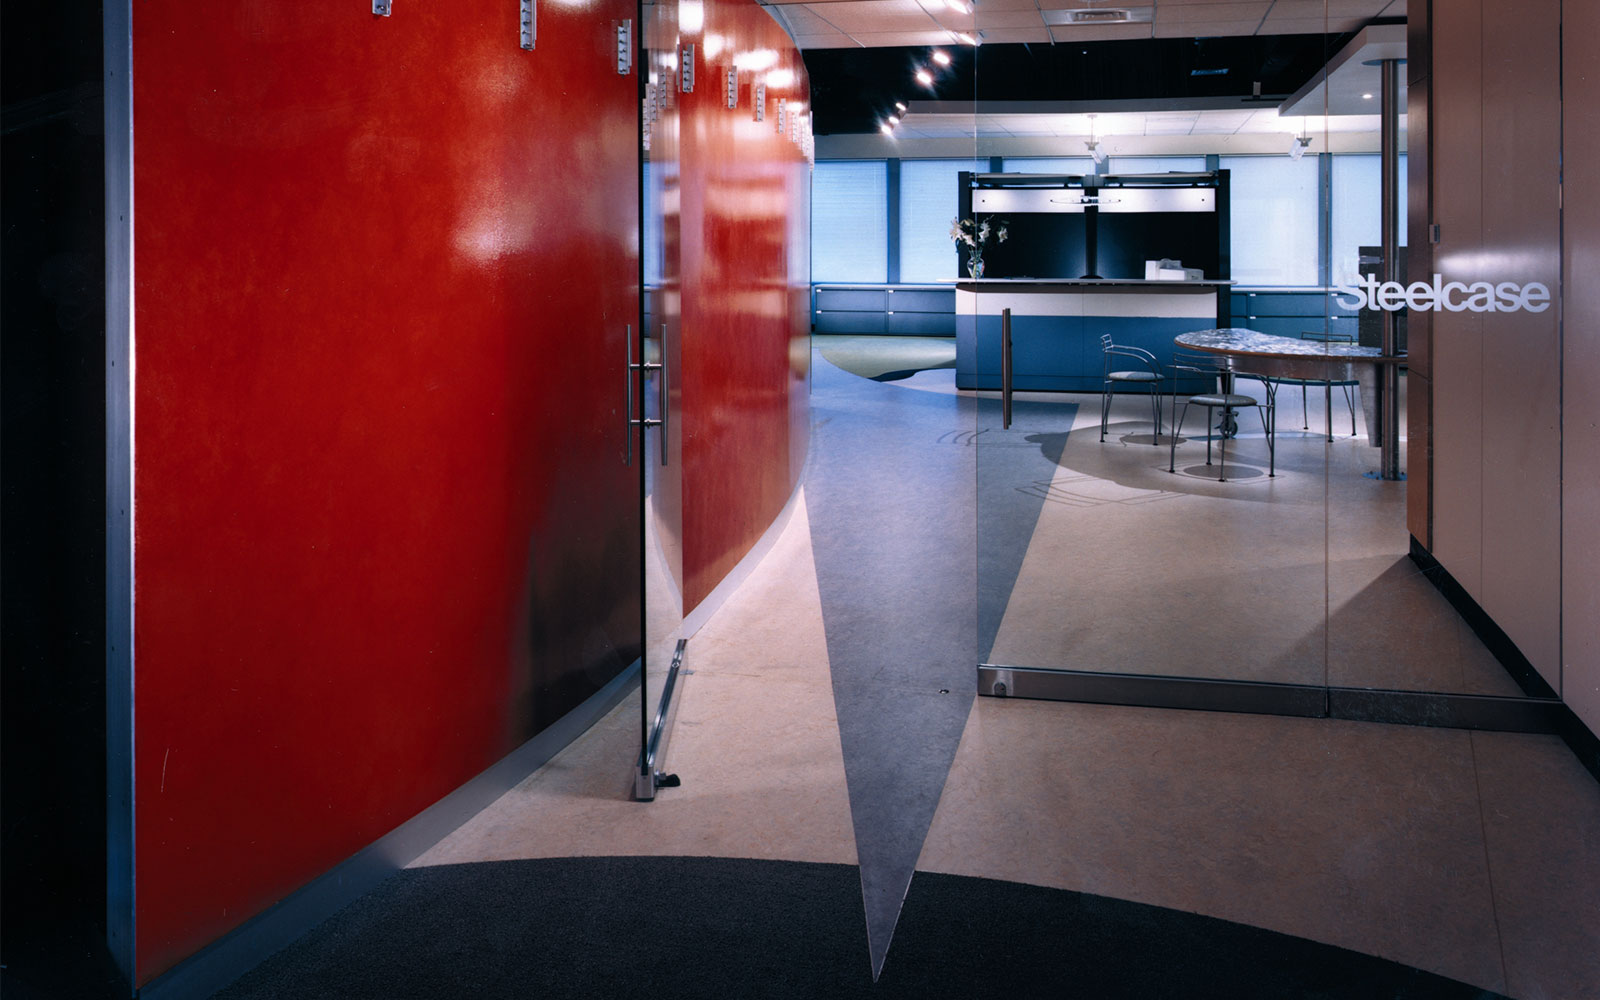 Stenton Light Industrial Painting - Steelcase Entrance